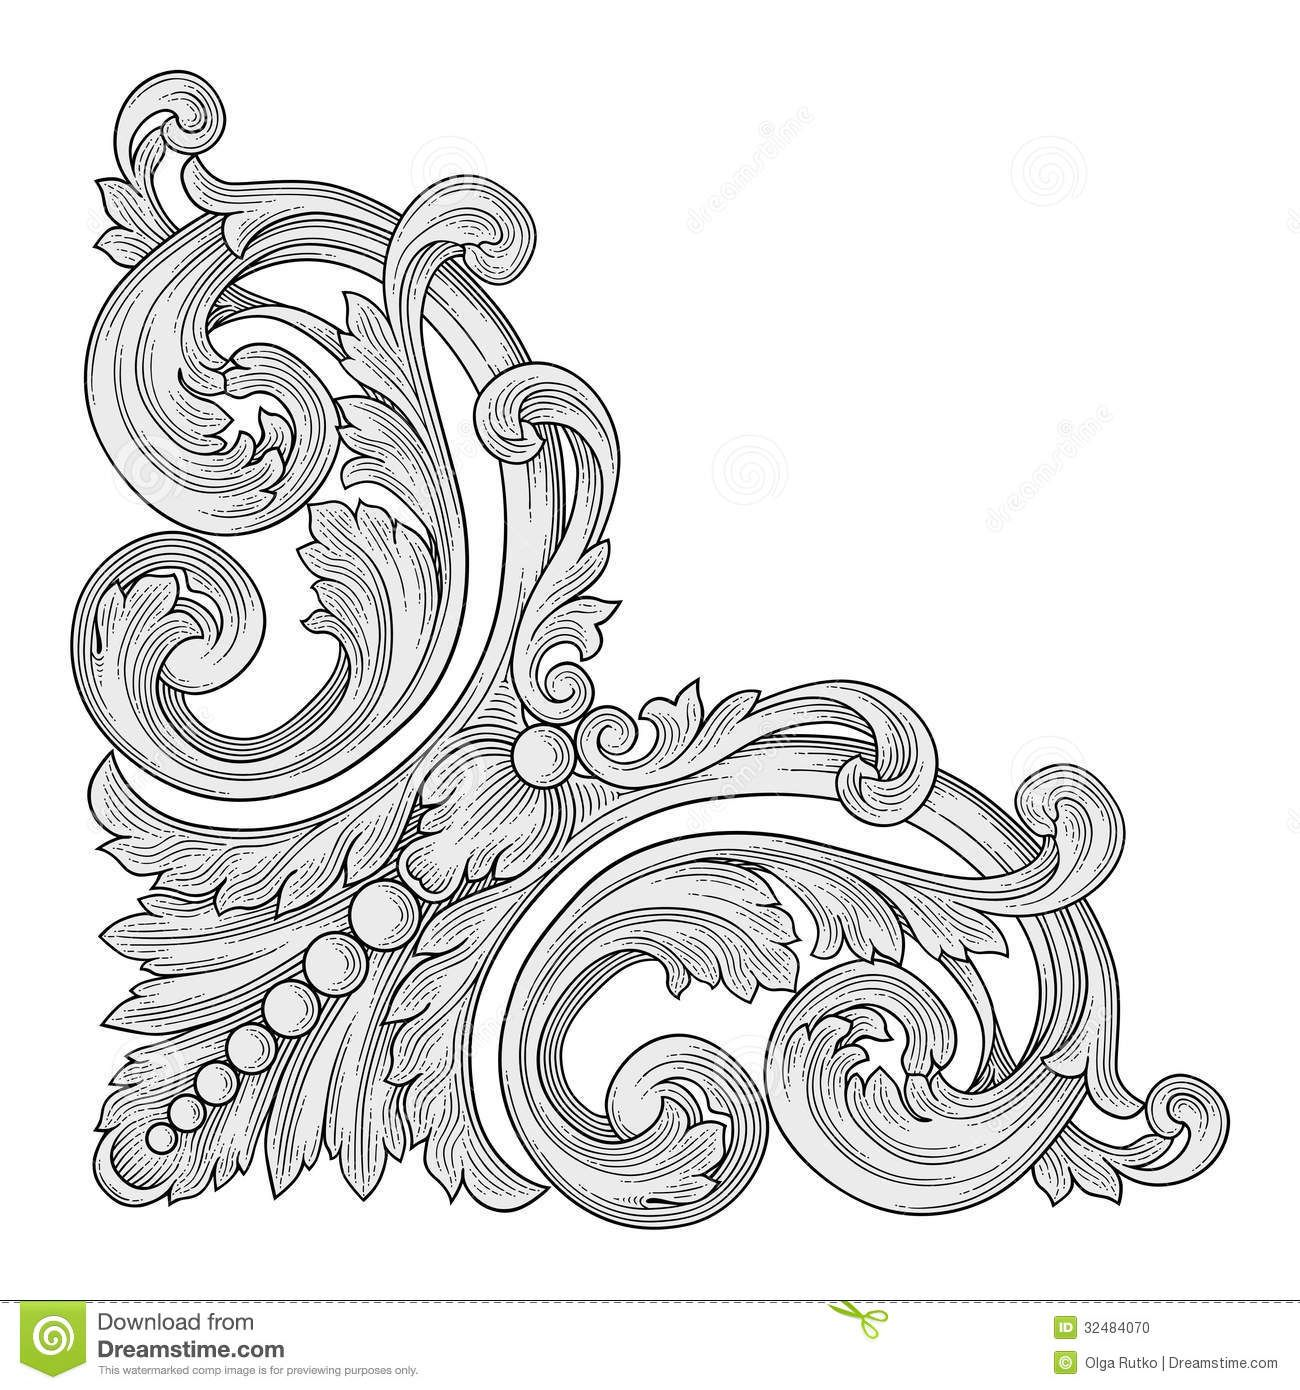 Decoration frame corner vector illustration - Ornamenti colorazione pagina ornamenti ...